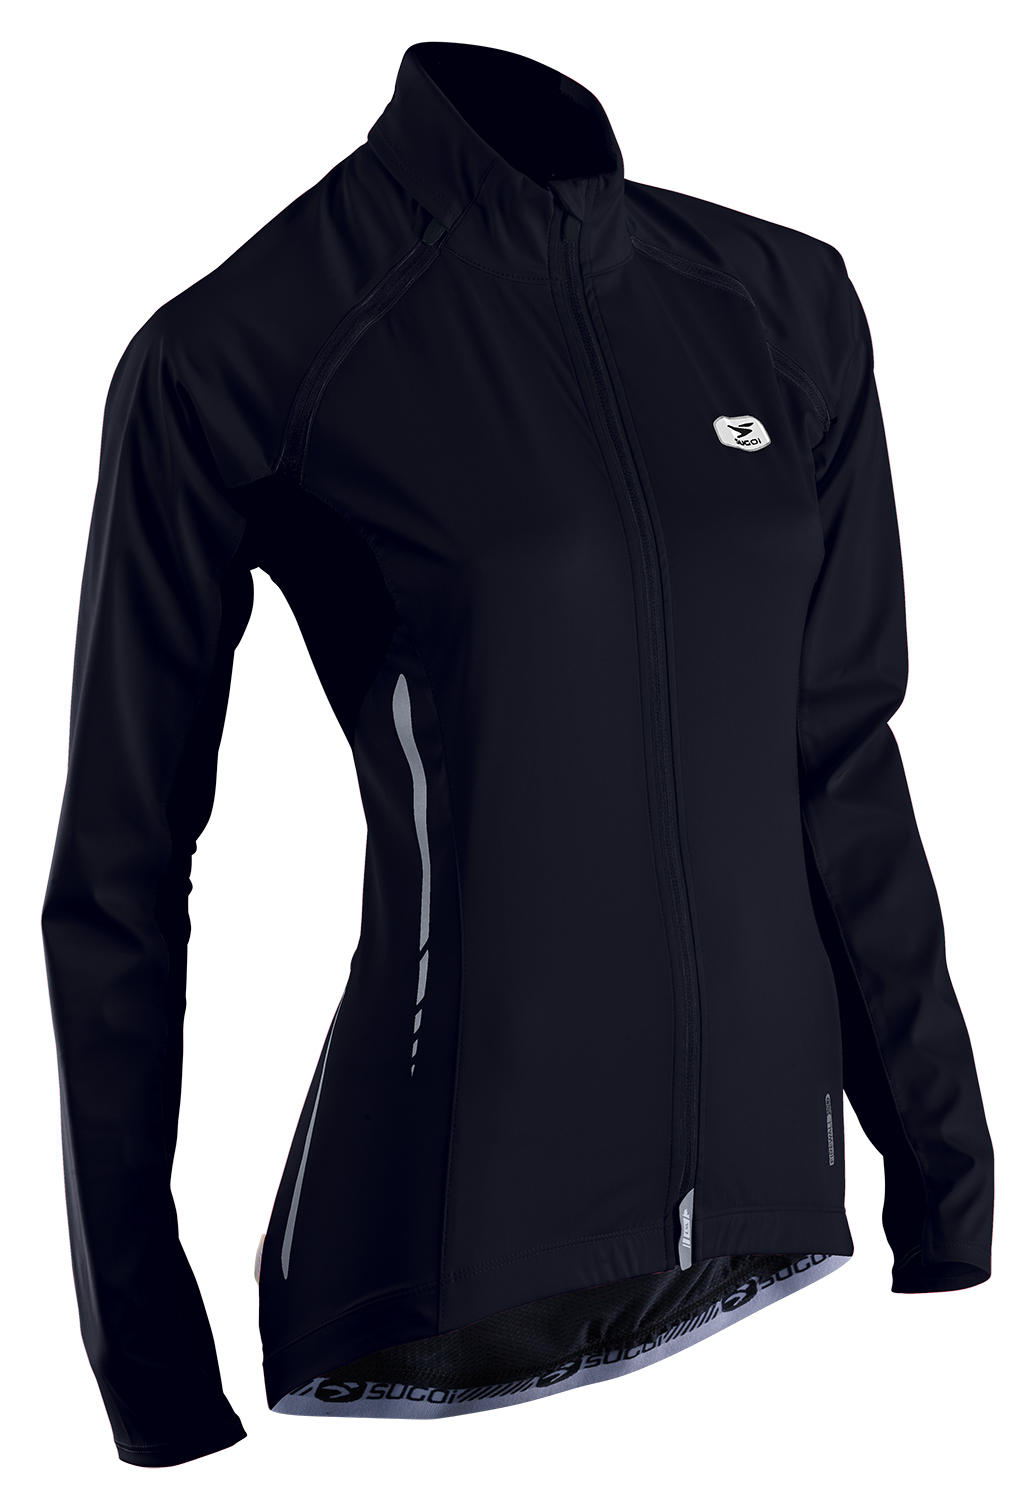 SUGOi RS 120 Convertible - Cykeljakke til damer - Sort | Jackets